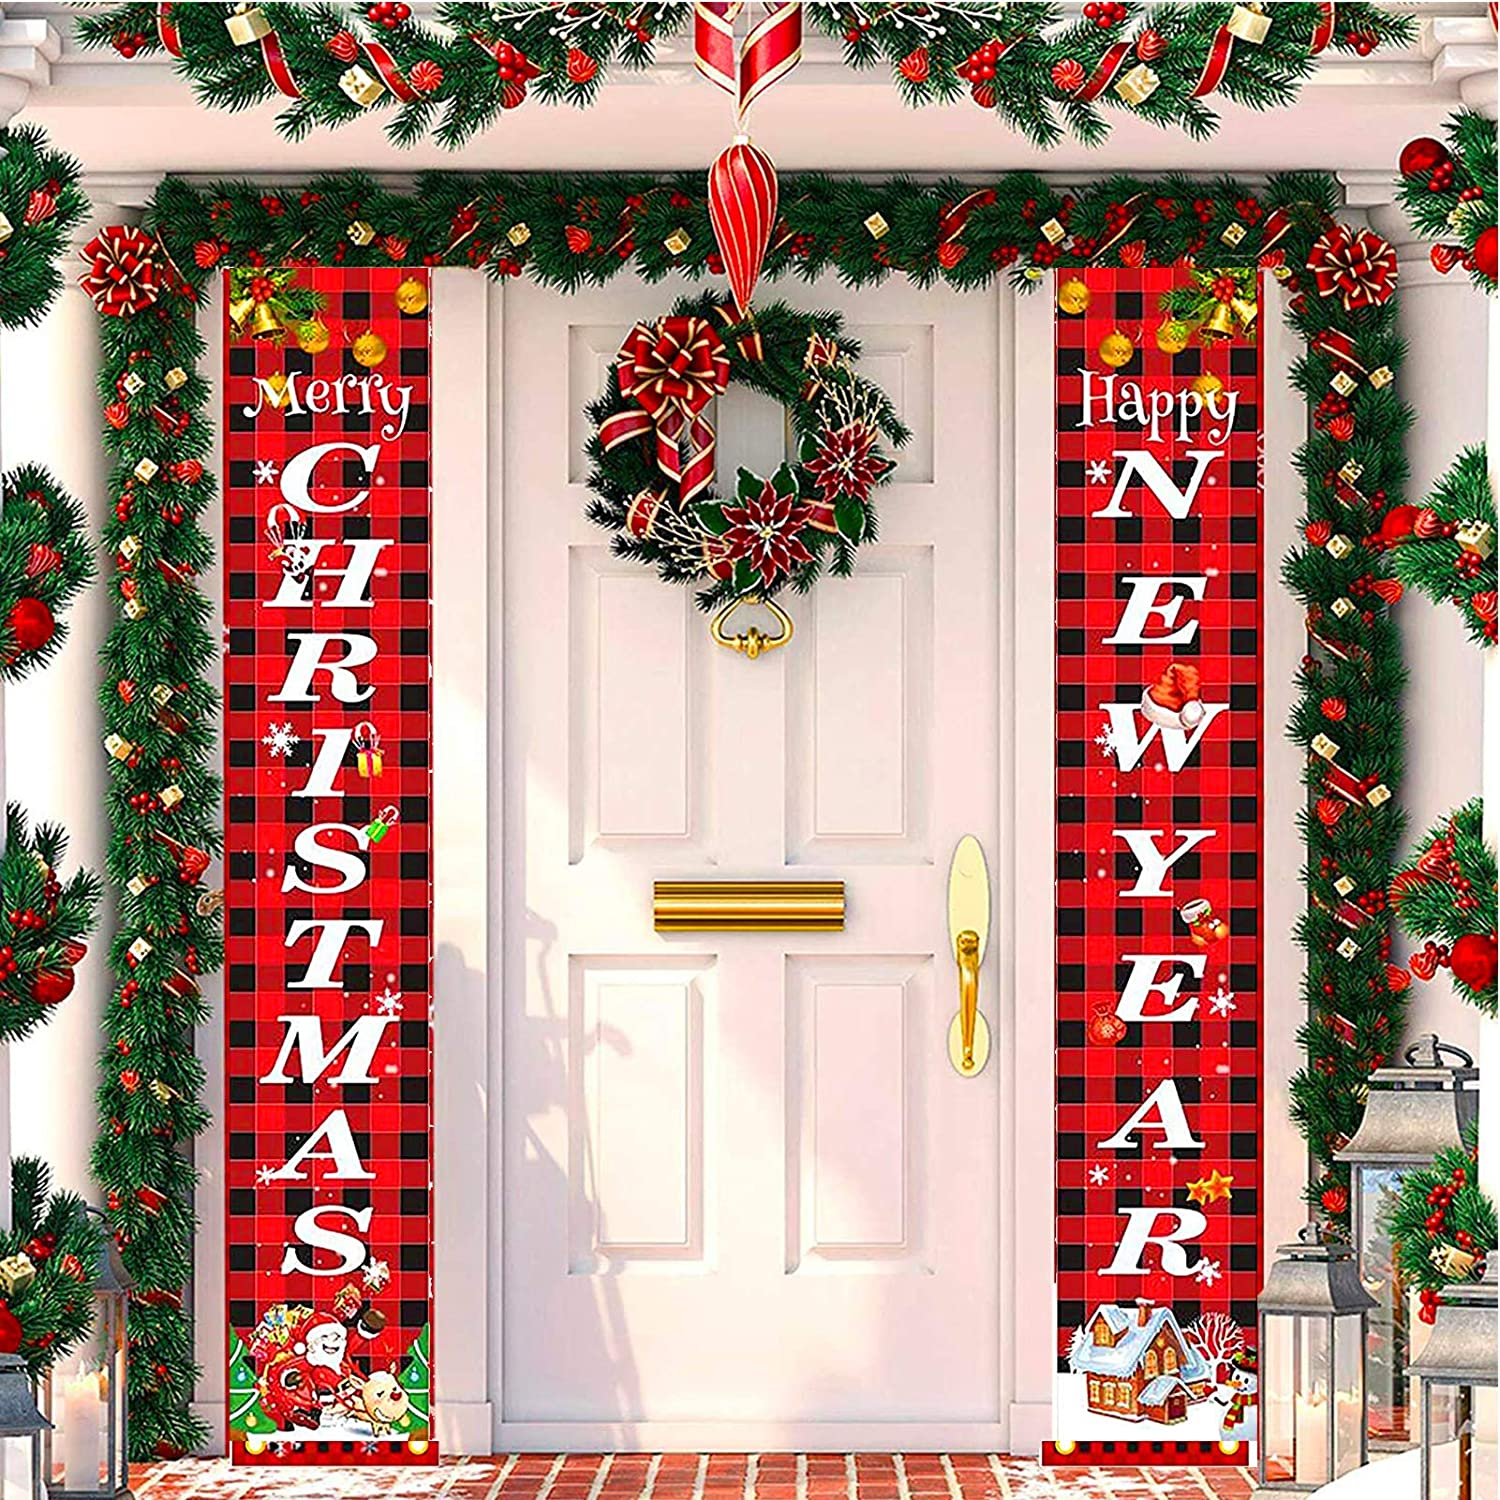 Outdoor Christmas Decoration for Home, Farmhouse Christmas Decor- Merry Christmas Happy New Year Red Buffalo Check Plaid Decor Xmas Decor for Indoor Front Door Living Room Kitchen Wall Party